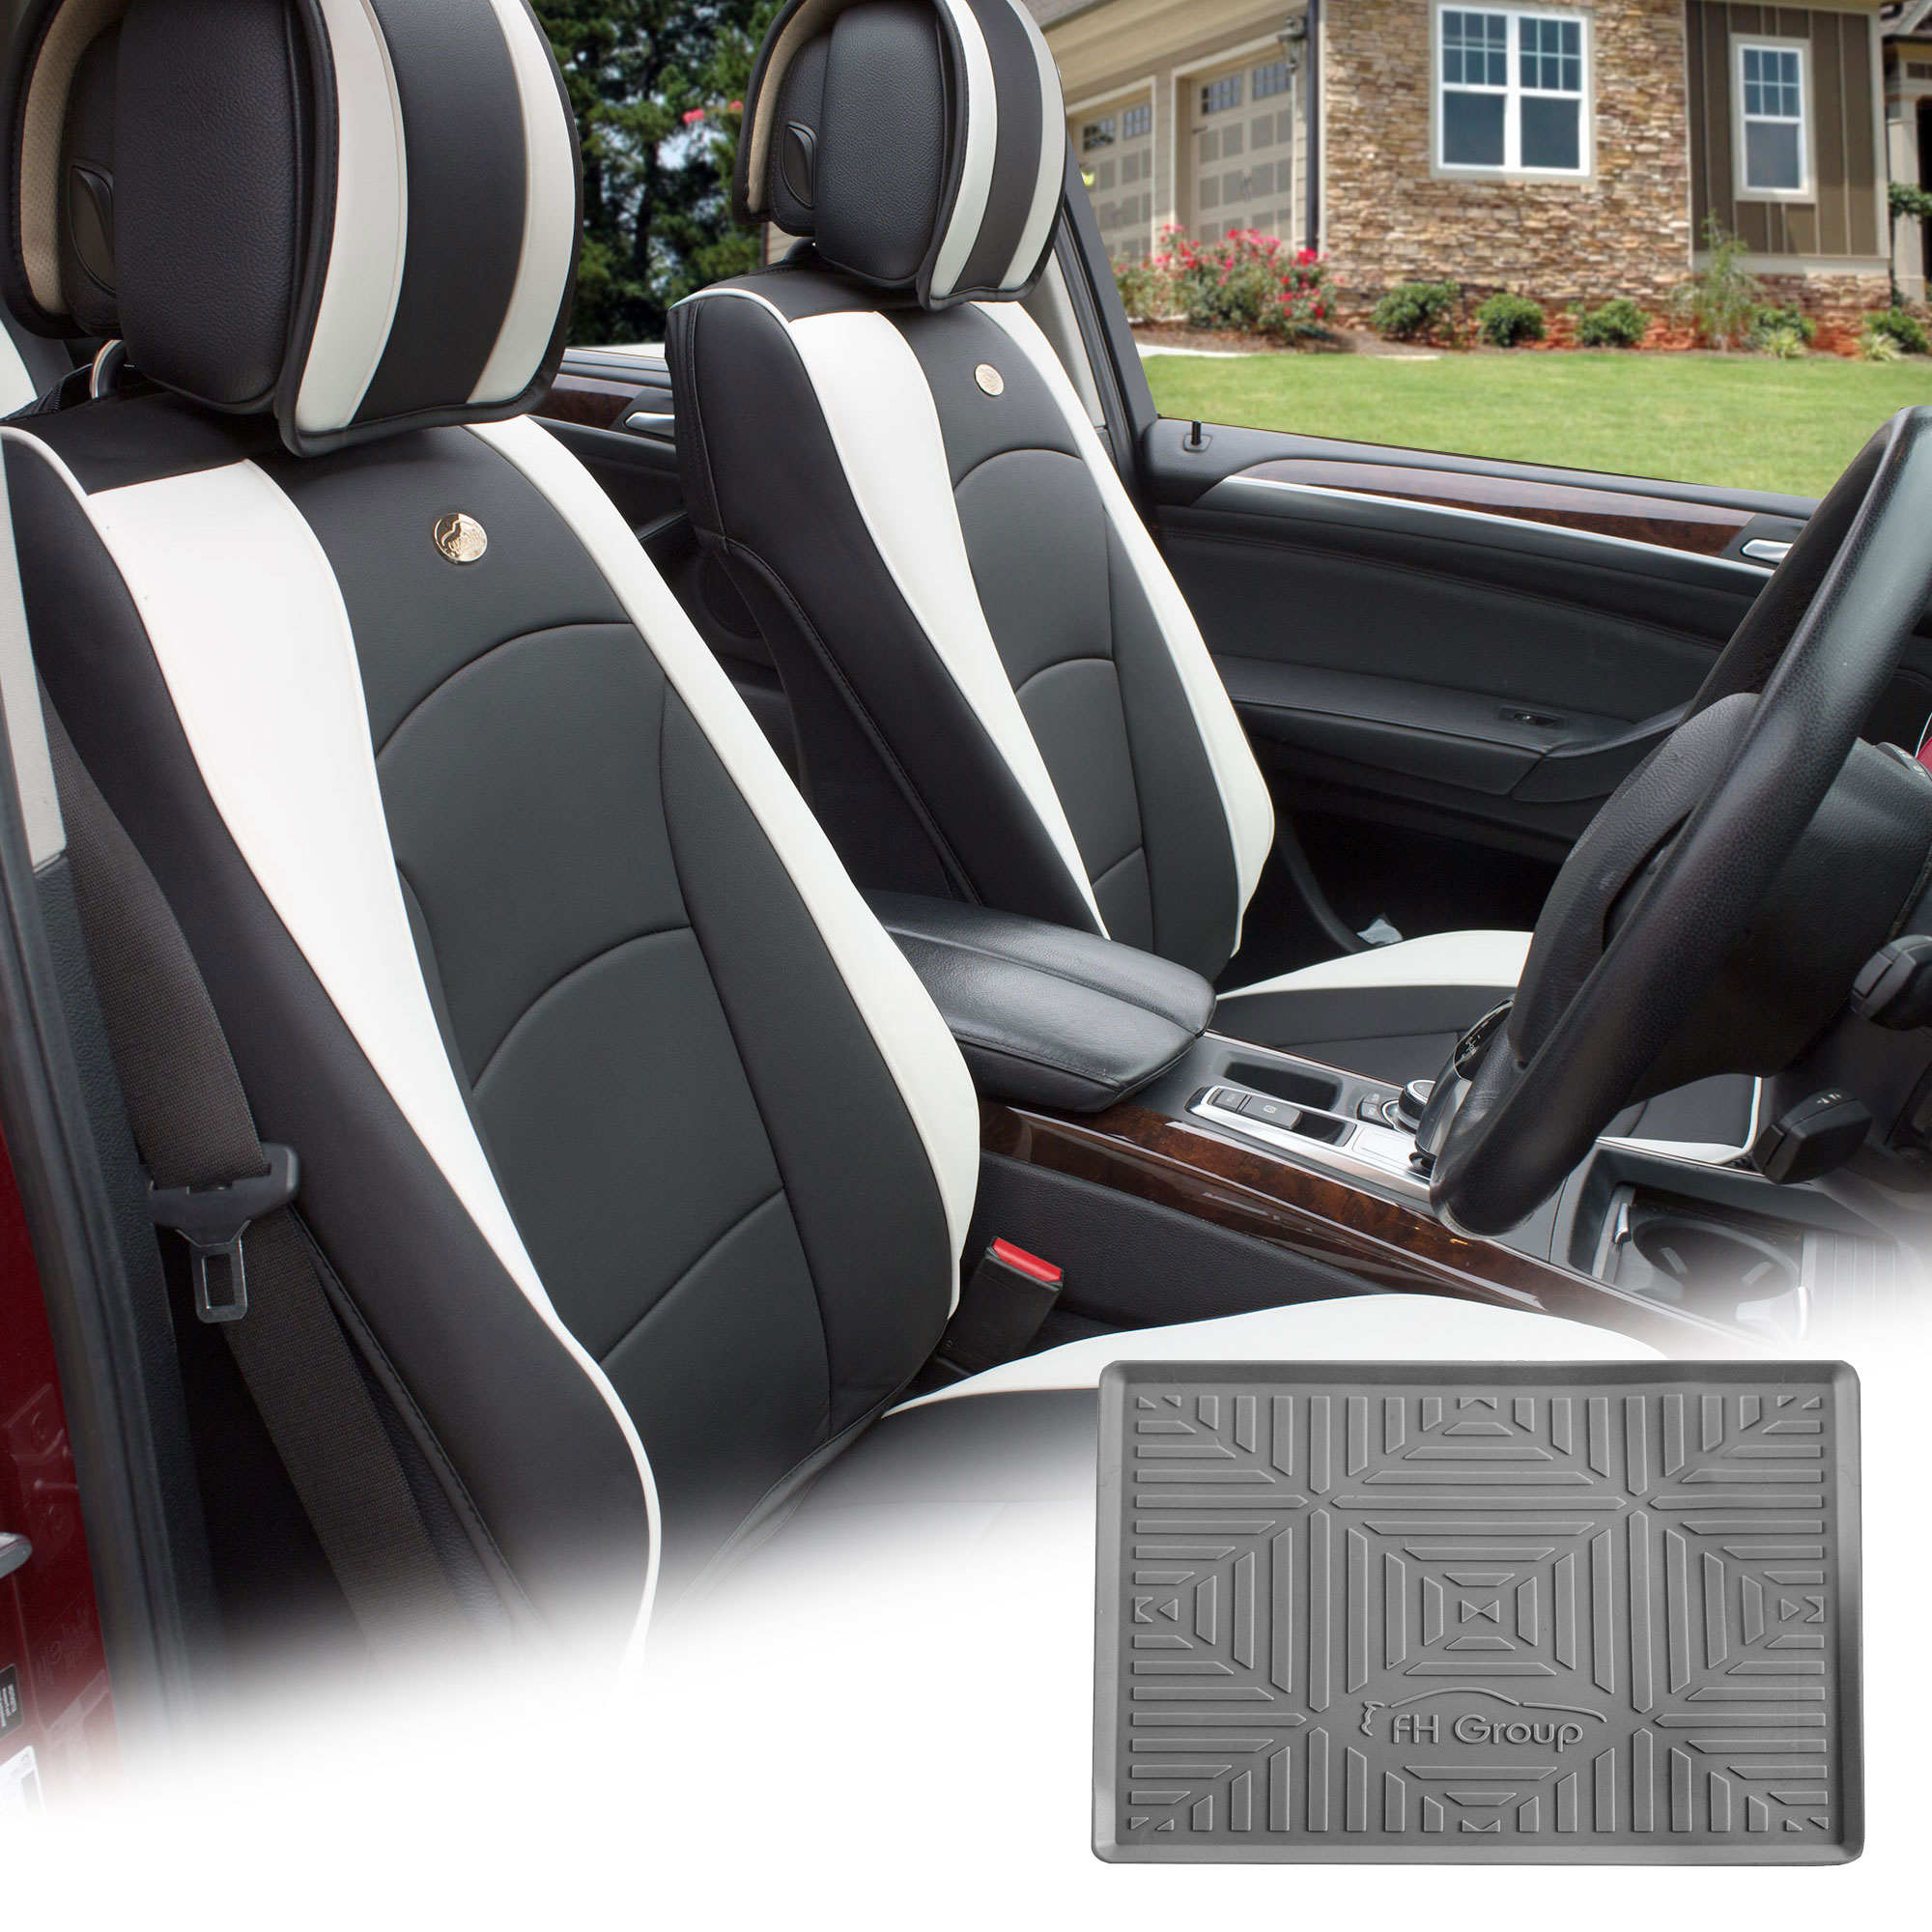 Fh Group Black White Leatherette Front Bucket Seat Cushion Covers